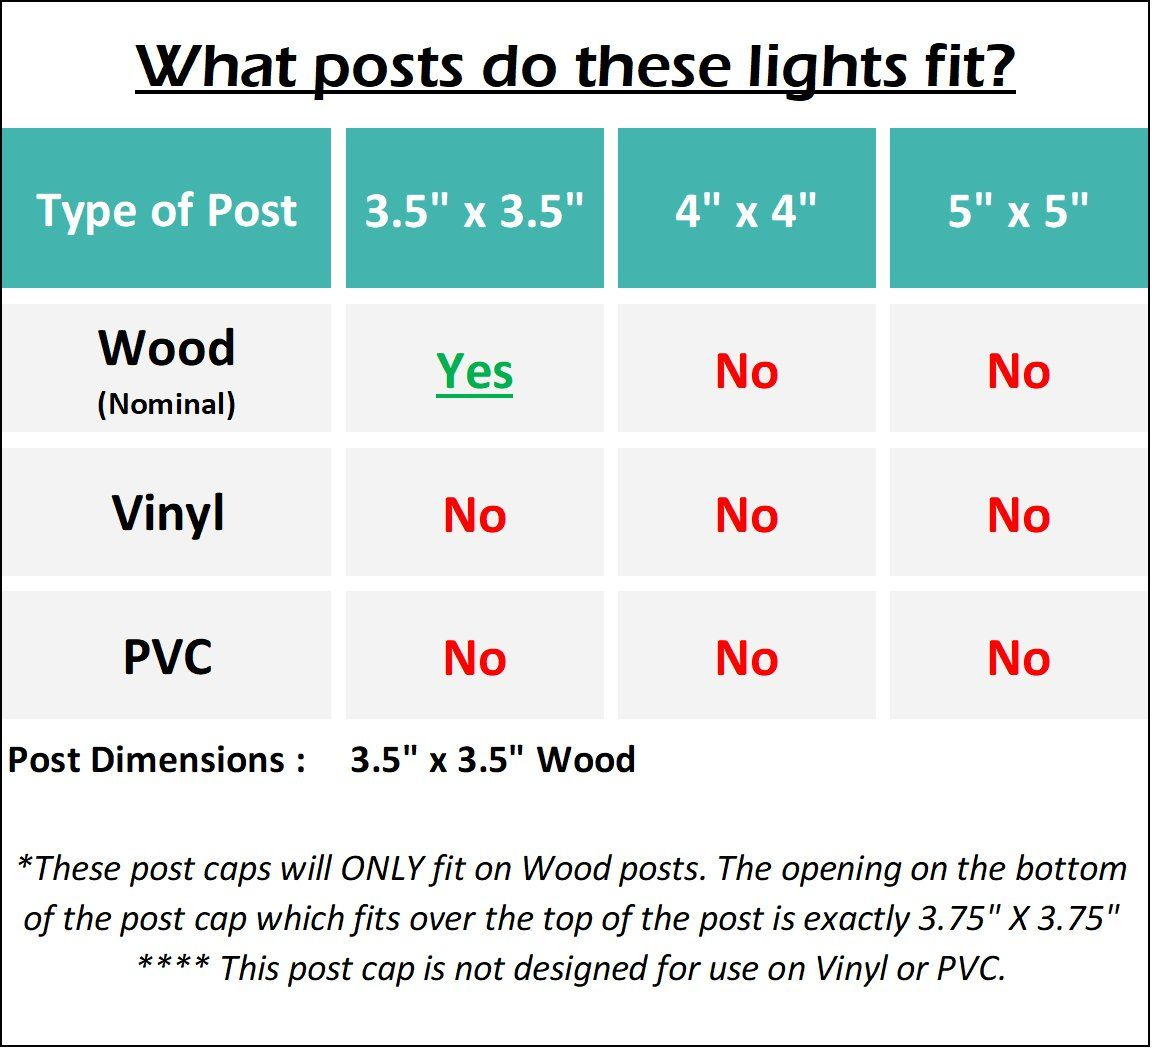 Greenlighting Translucent 12 Lumen Led Solar Powered Post Cap Light For 4x4 Wood Posts 8 Pack Black Check Out This Great Wood Post Outdoor Lighting Post Cap